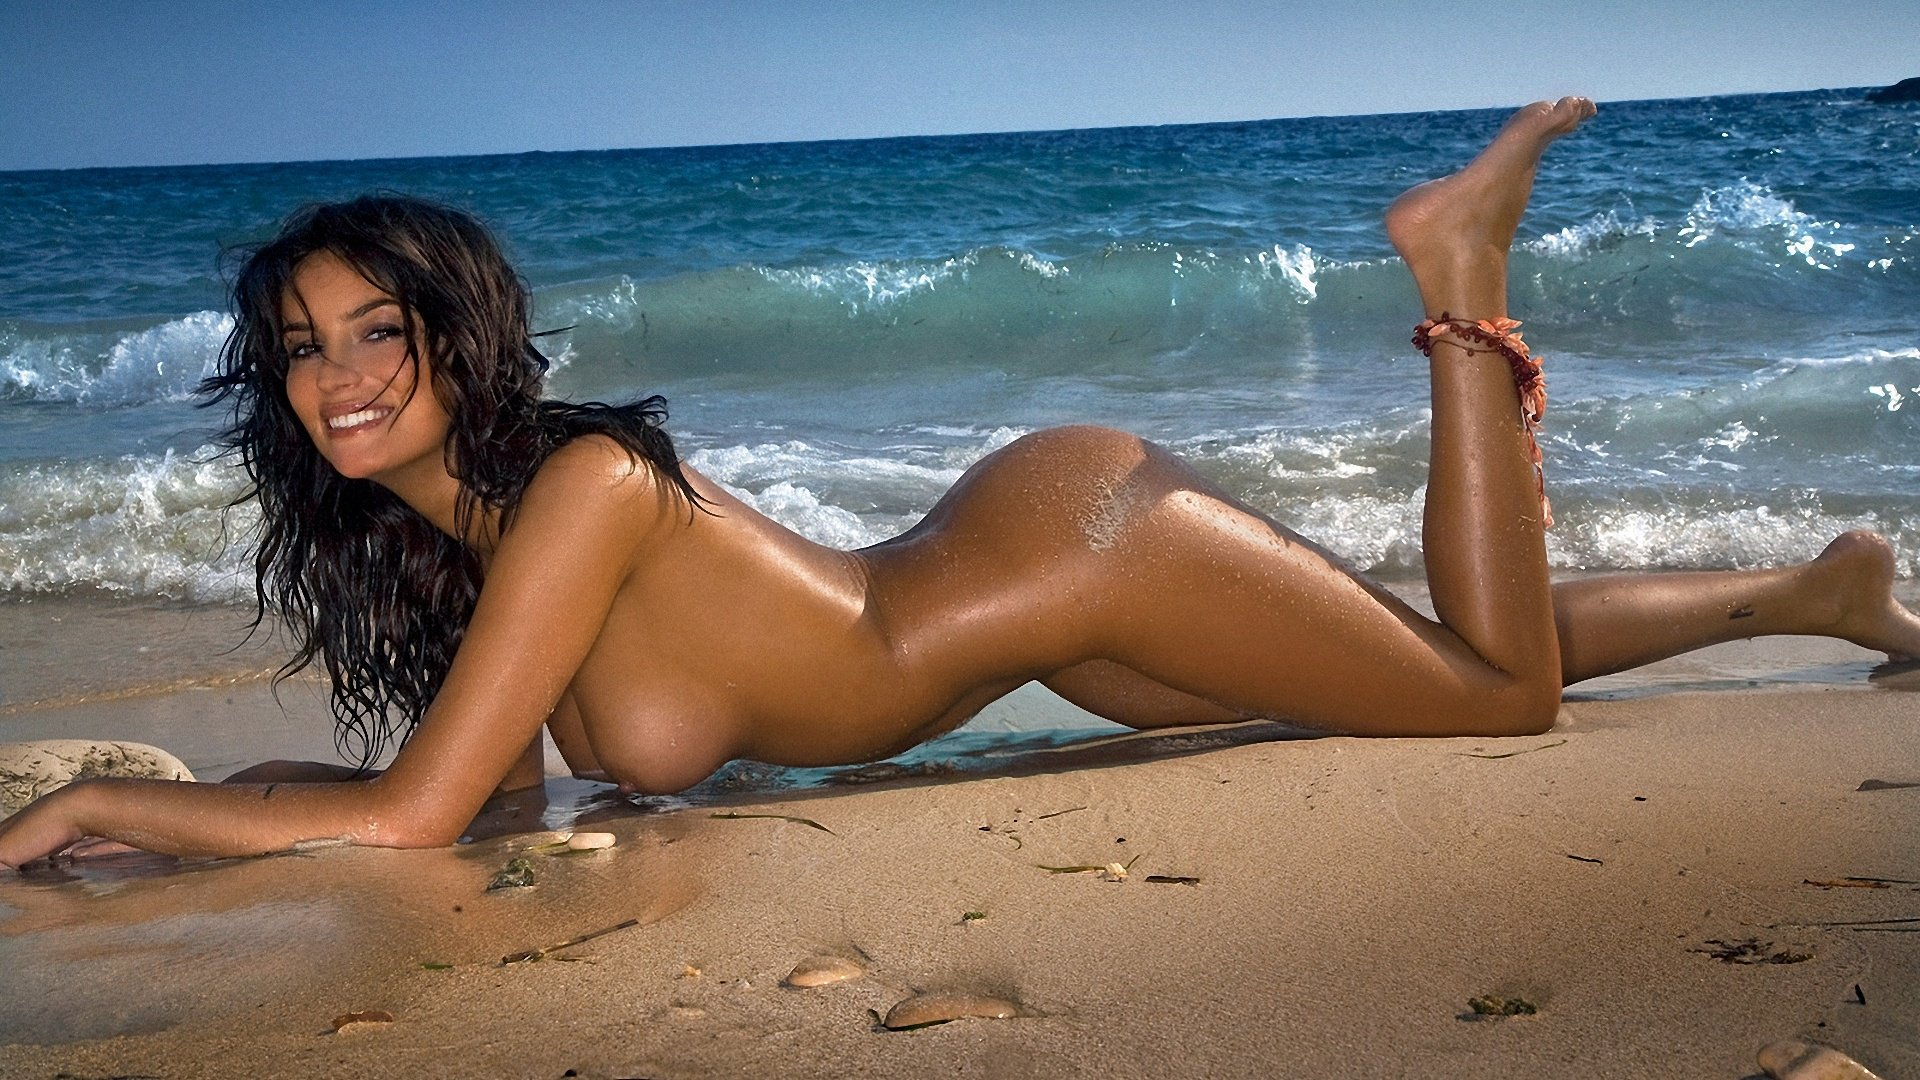 Hot women at a nude beach #2